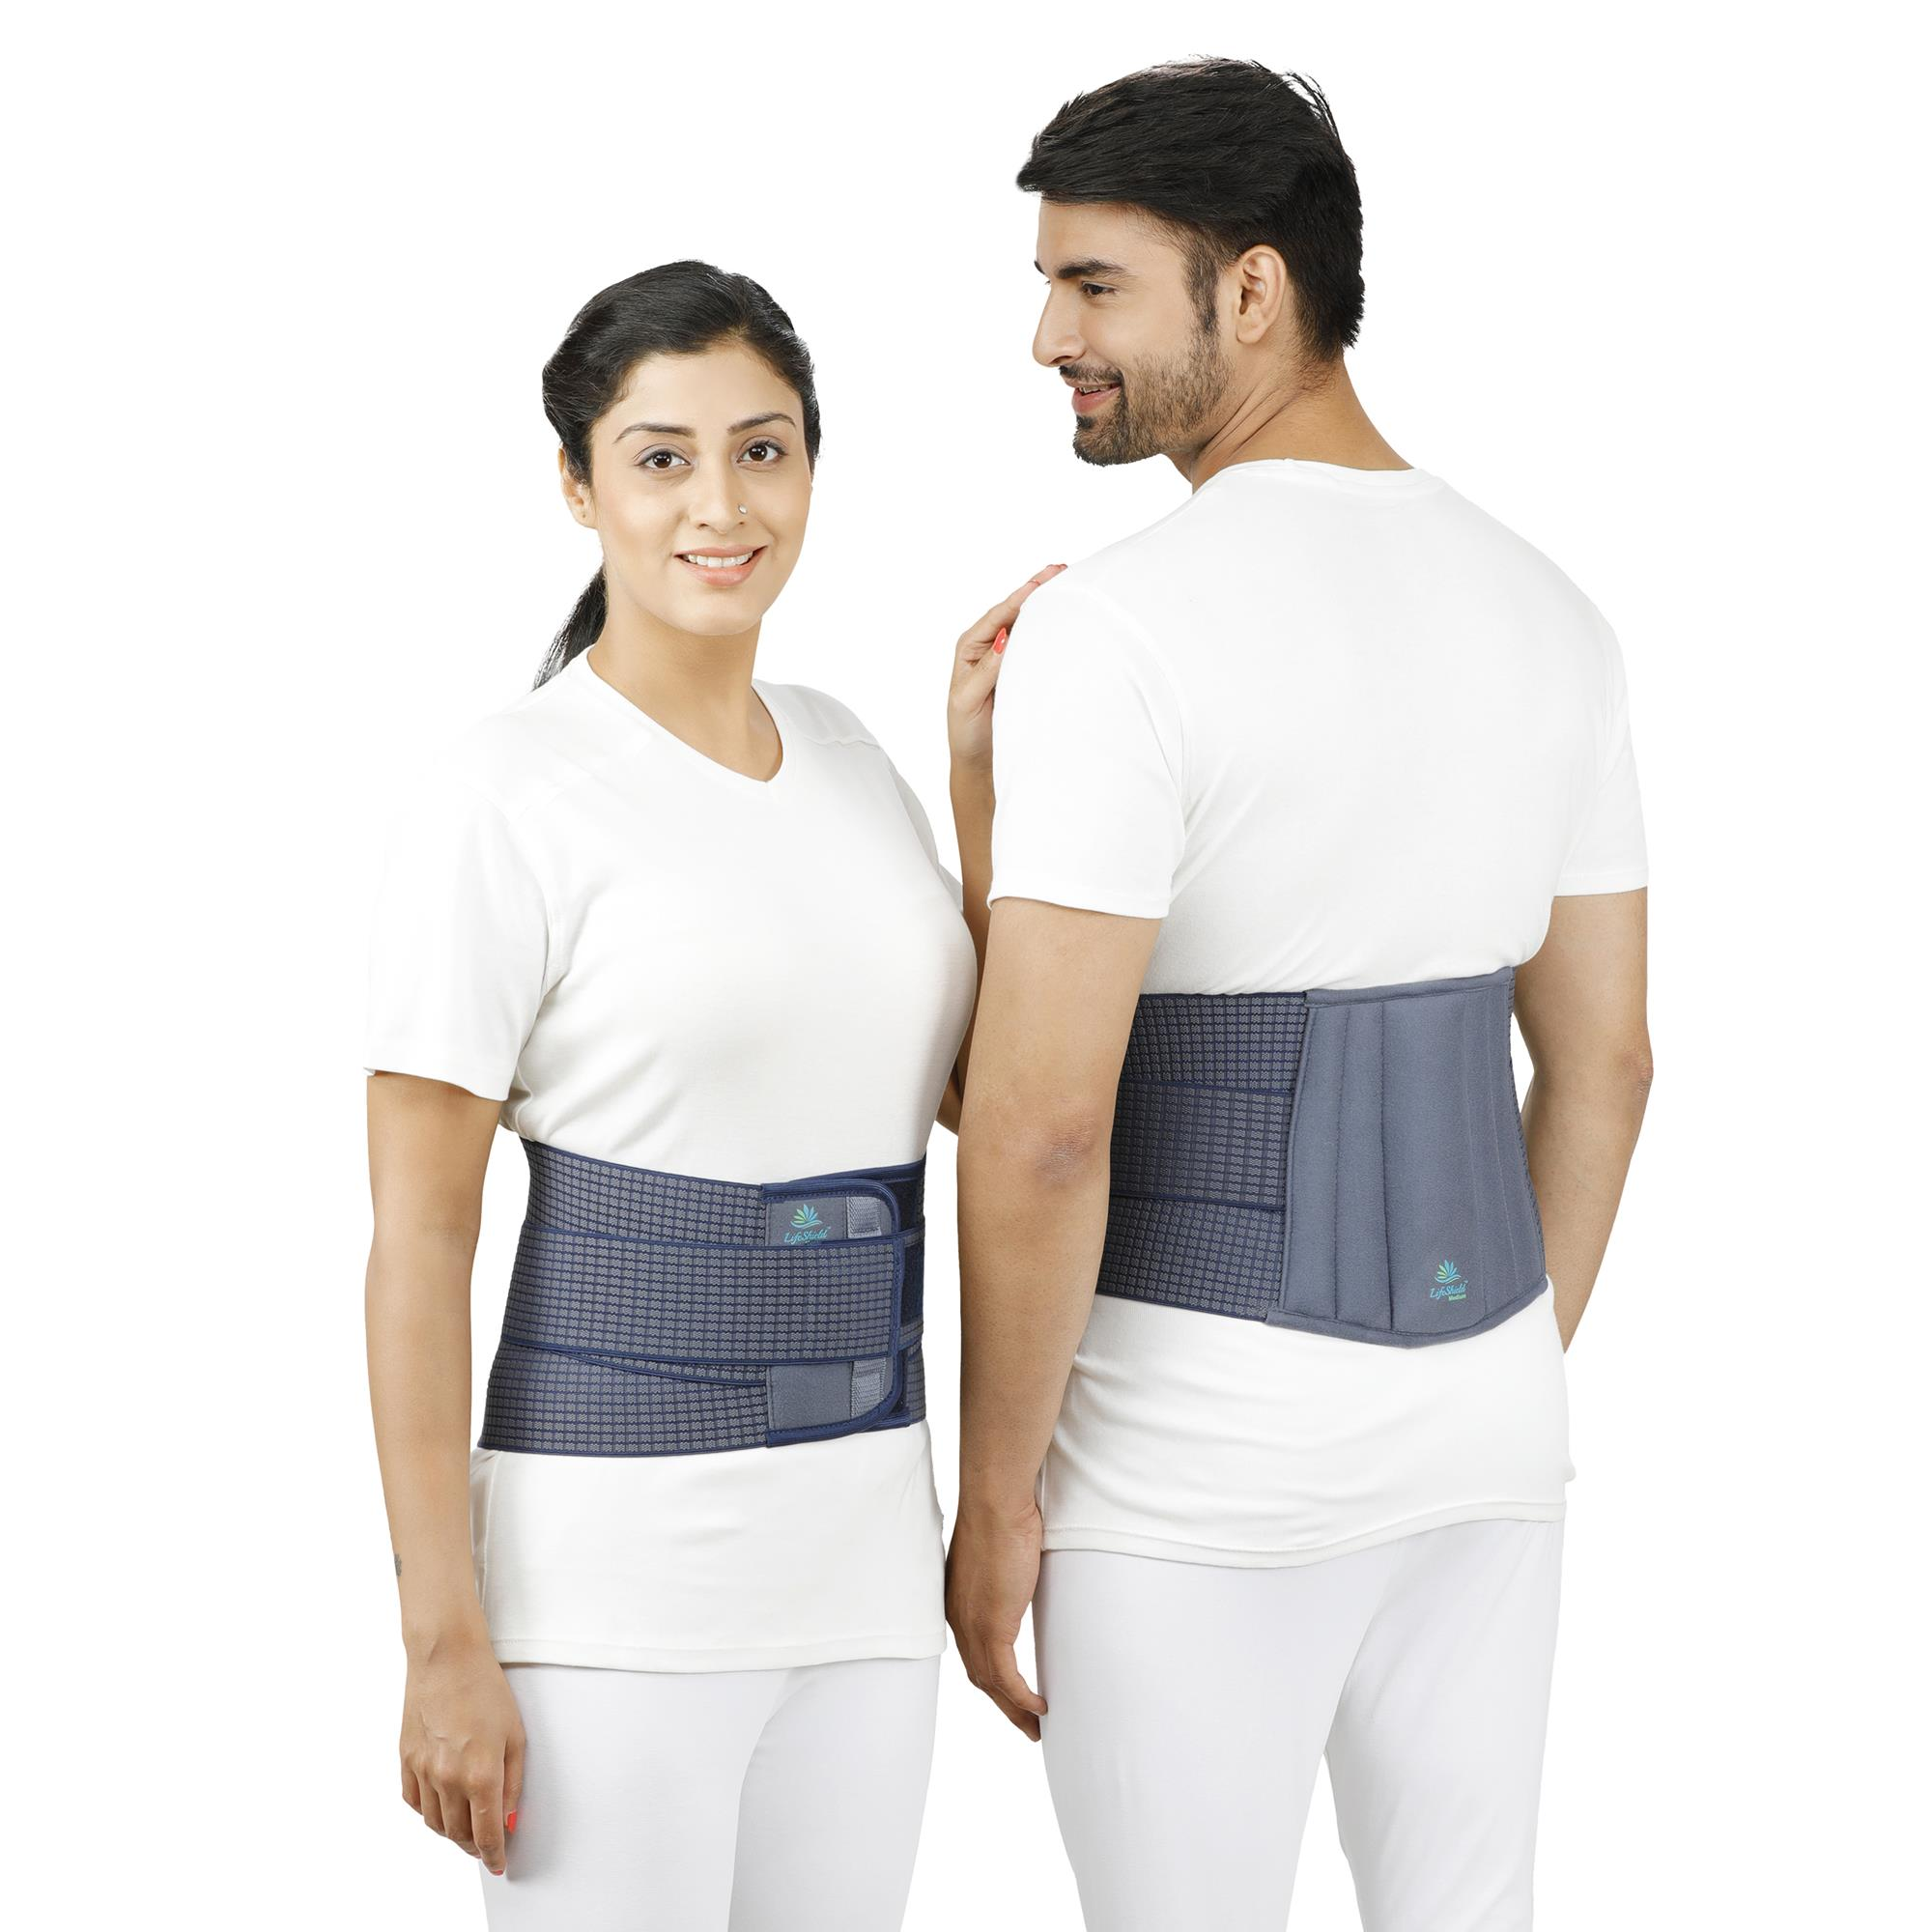 Lifeshield Lumbo Sacral Support With Soft Padded Foam: Provides Back Support To Lumber Region (Large)